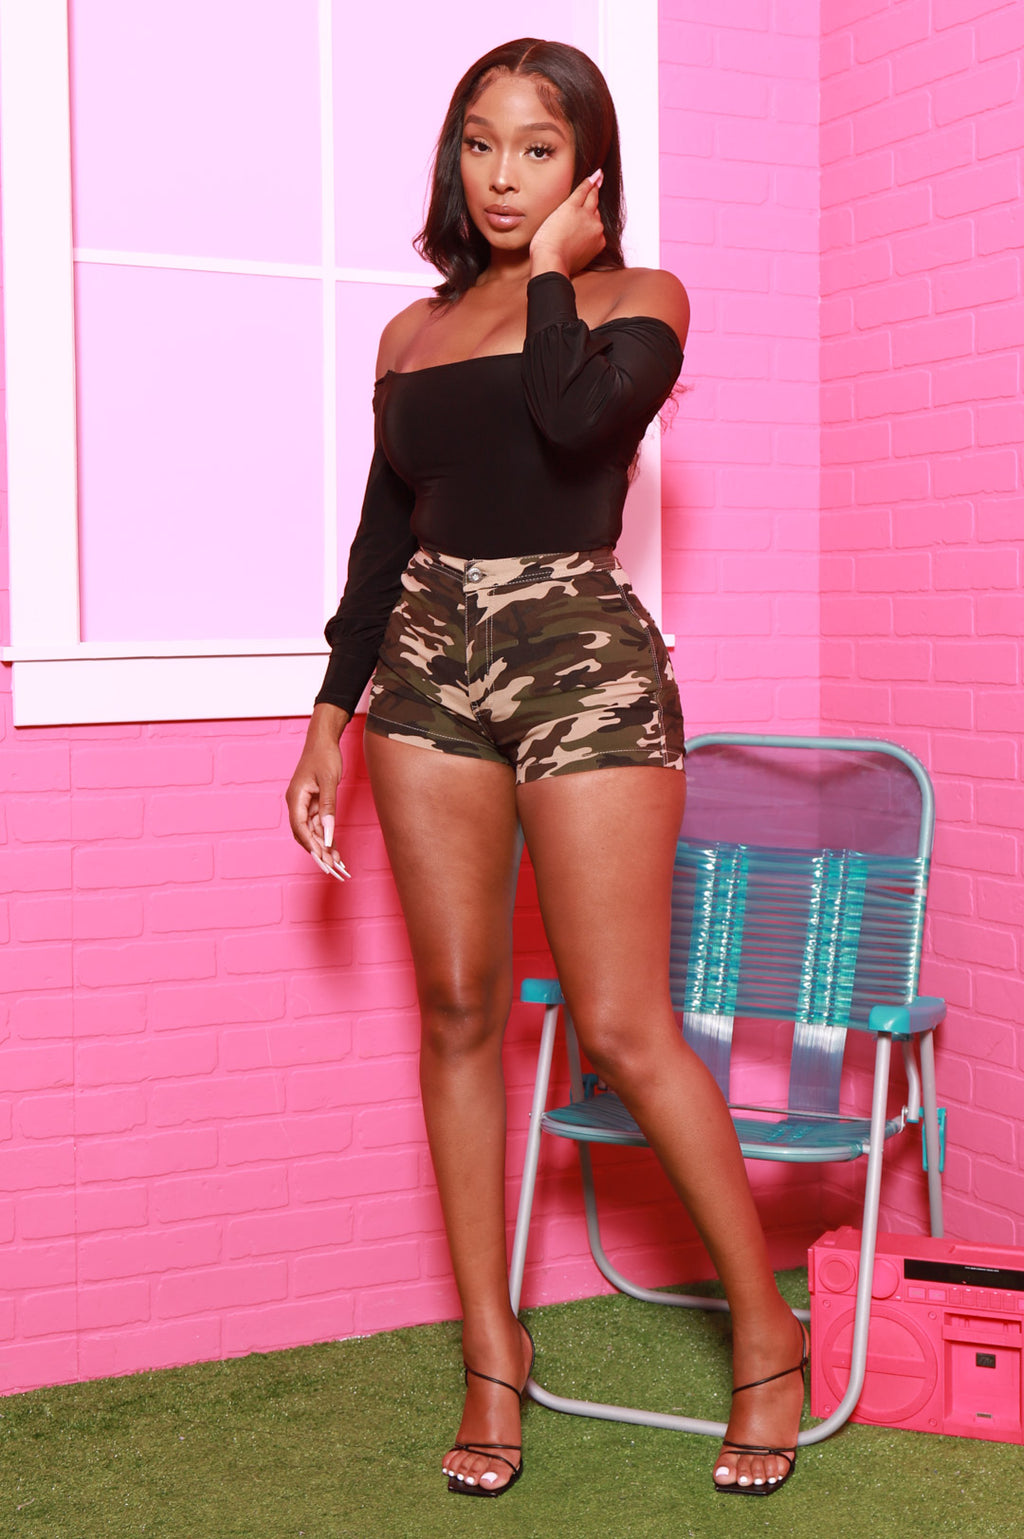 Ace High Waist Stretchy Shorts - Dark Camo - Swank A Posh